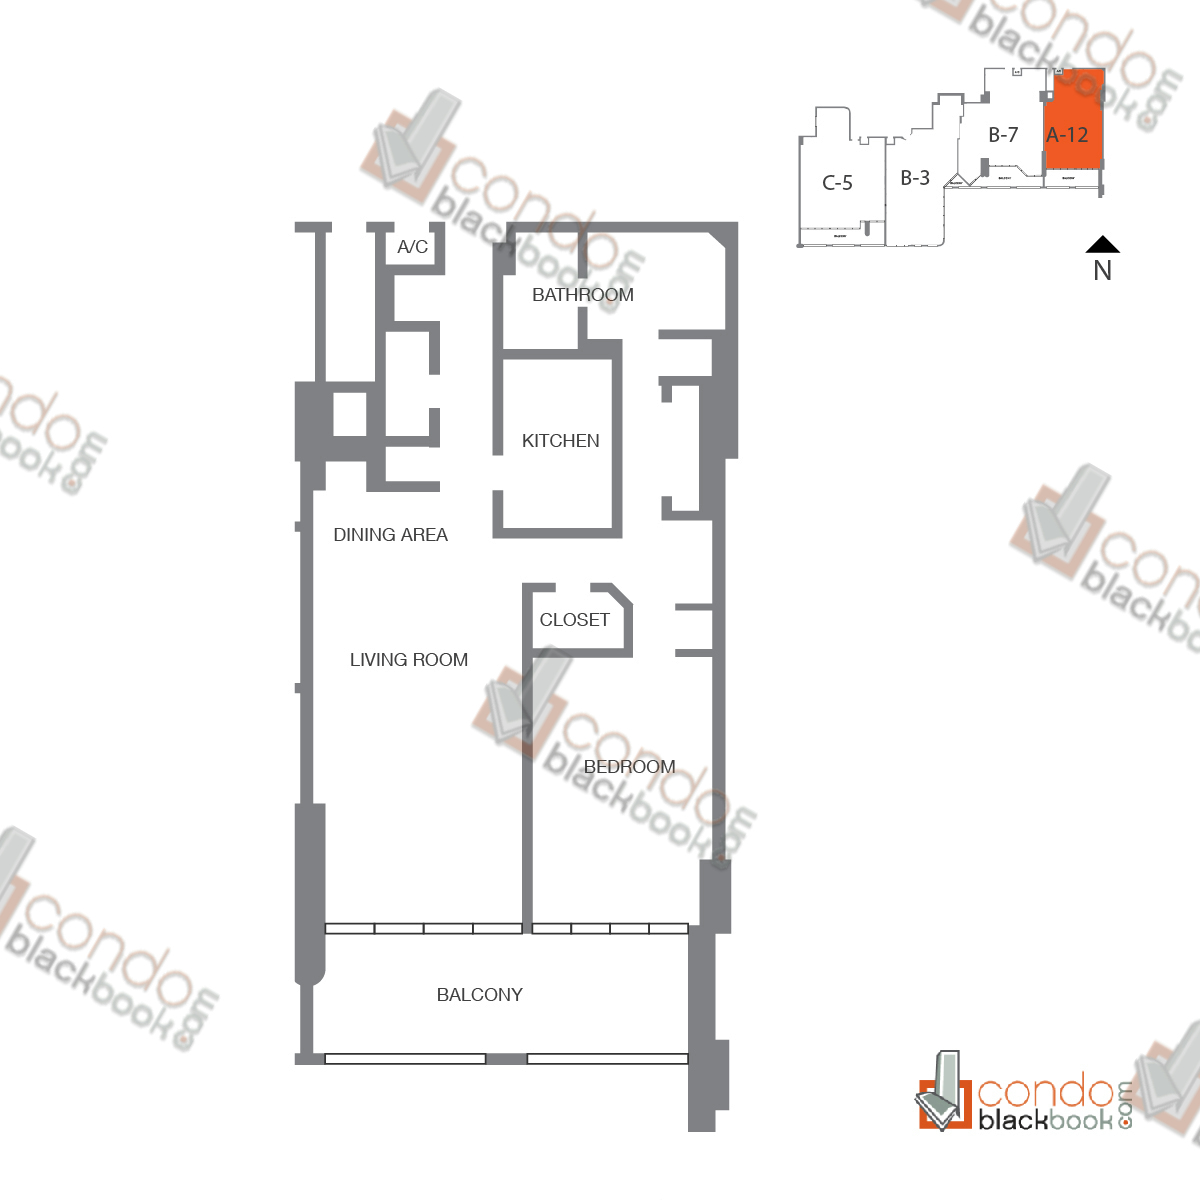 Floor plan for The Grand Arts & Entertainment District Miami, model Unit 49, line A-1049 to A-2249, 1/1 bedrooms, 1,001 sq ft